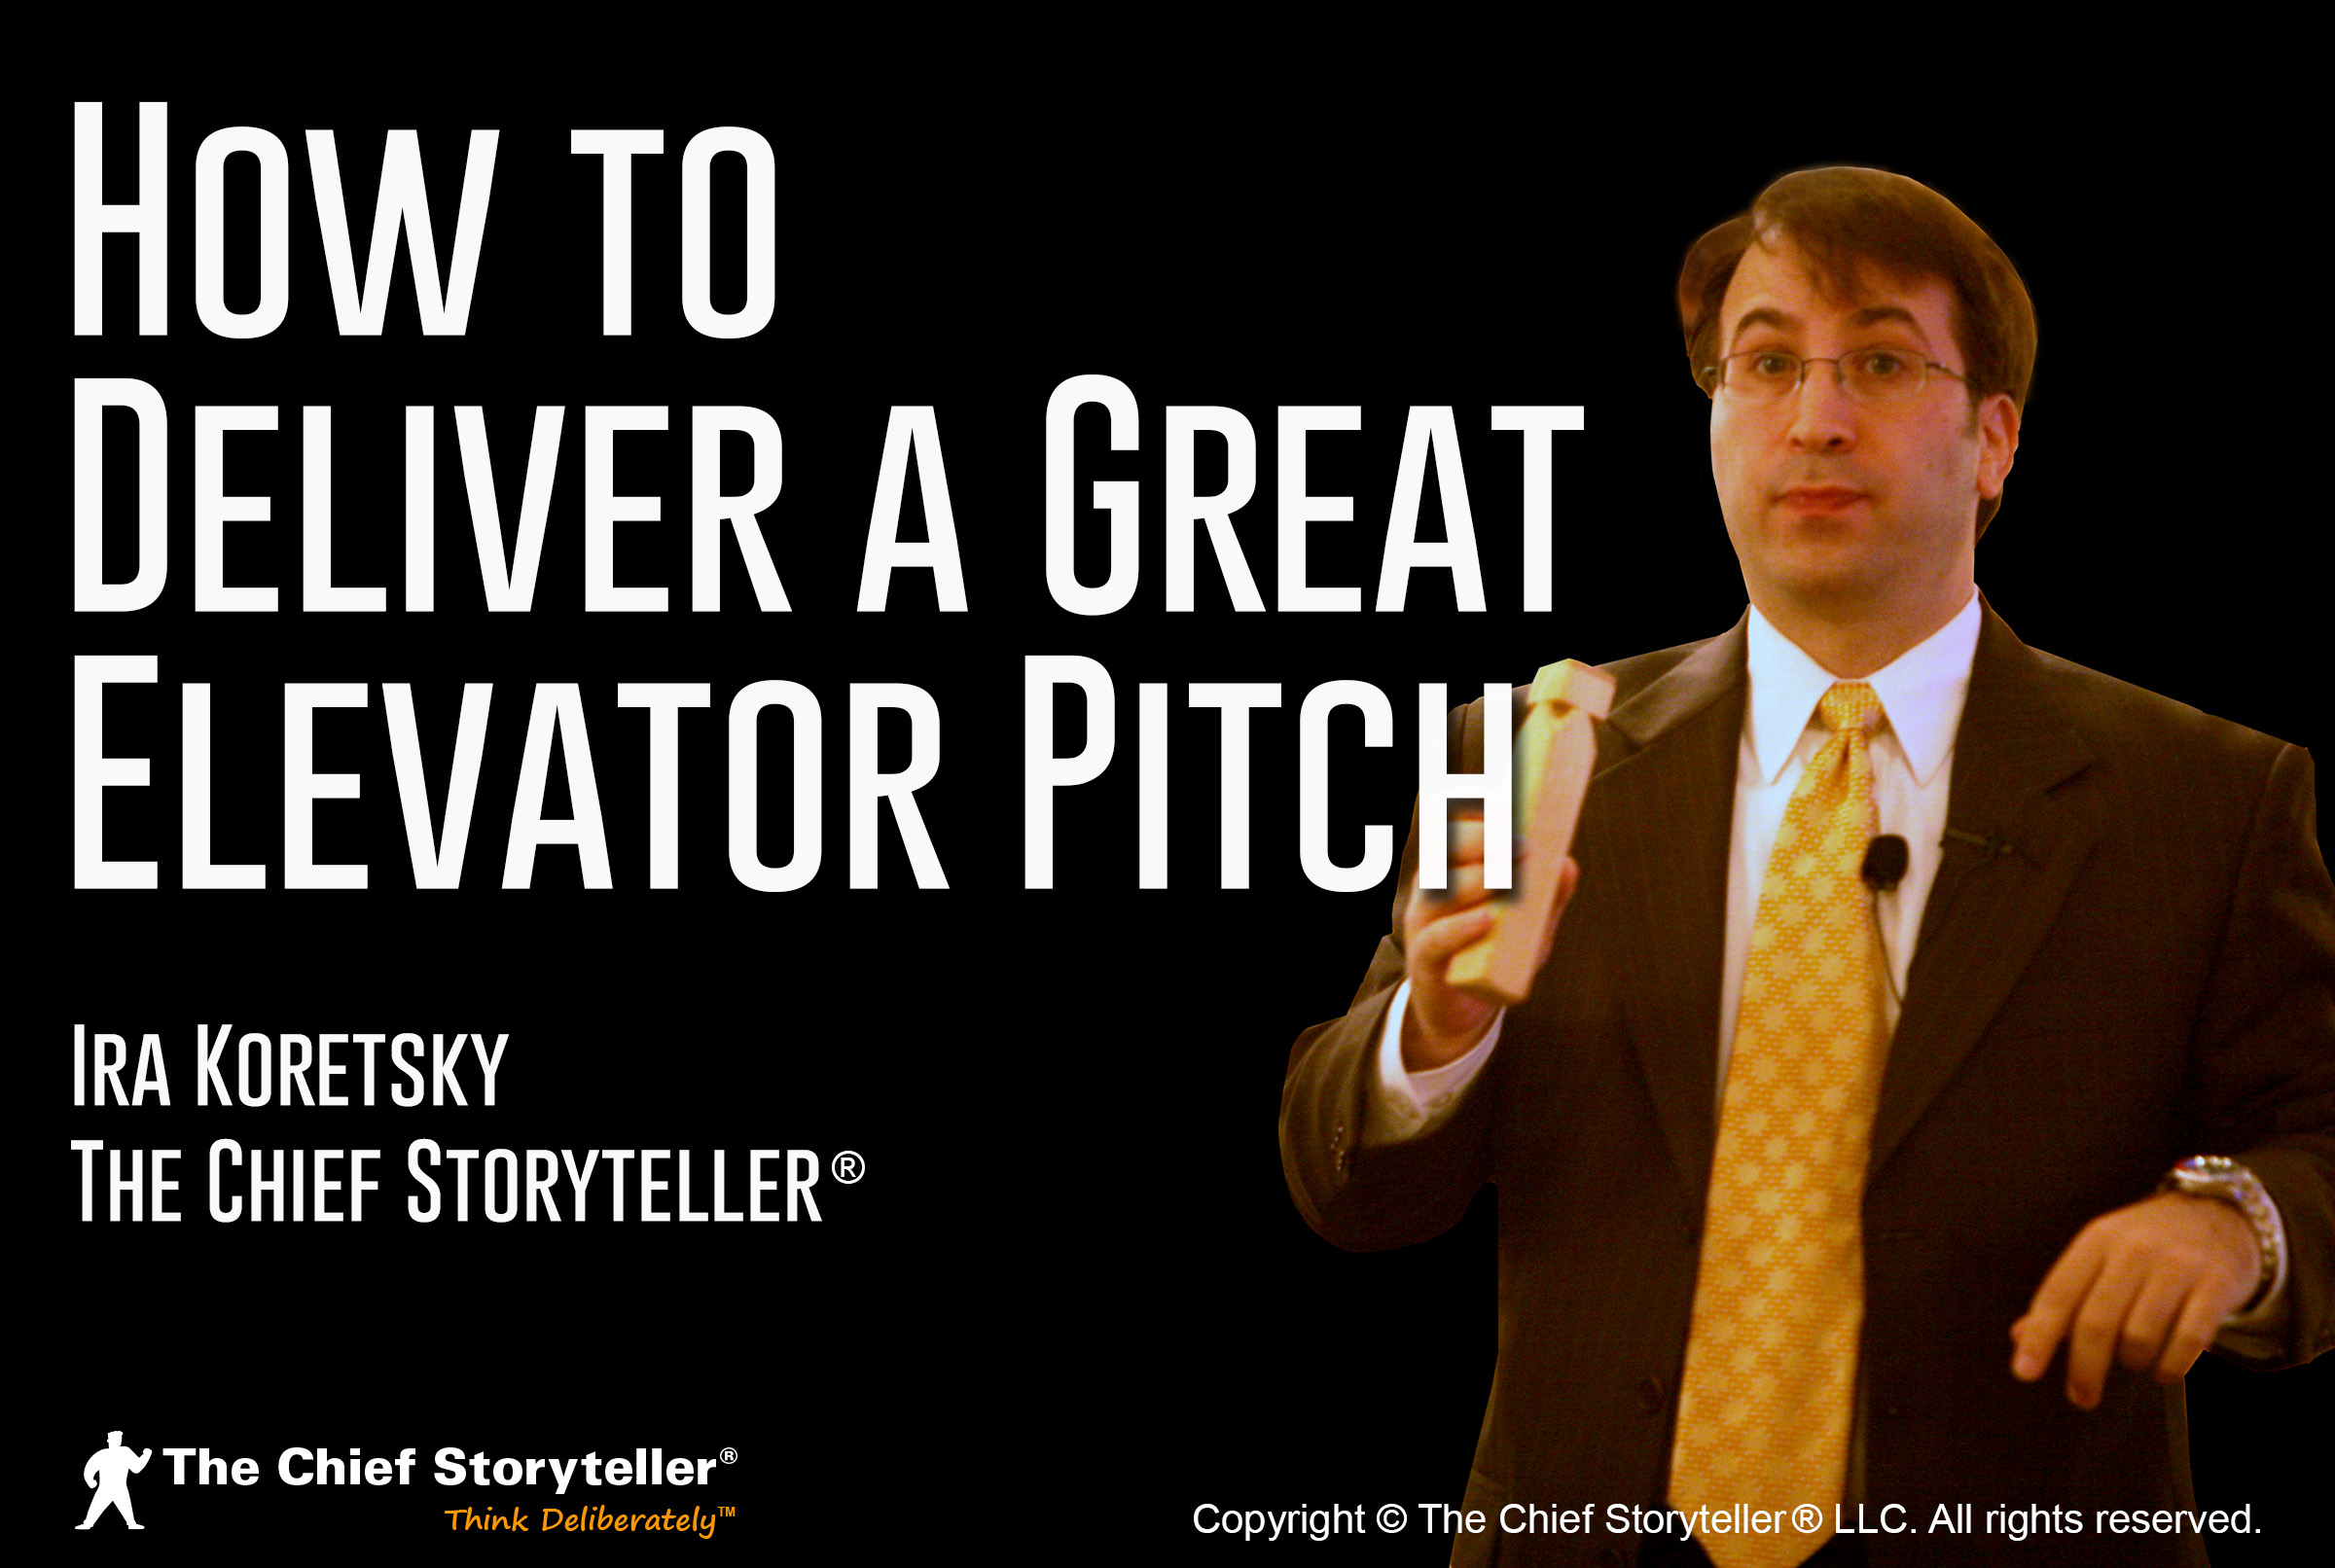 Deliver a Great Elevator Pitch